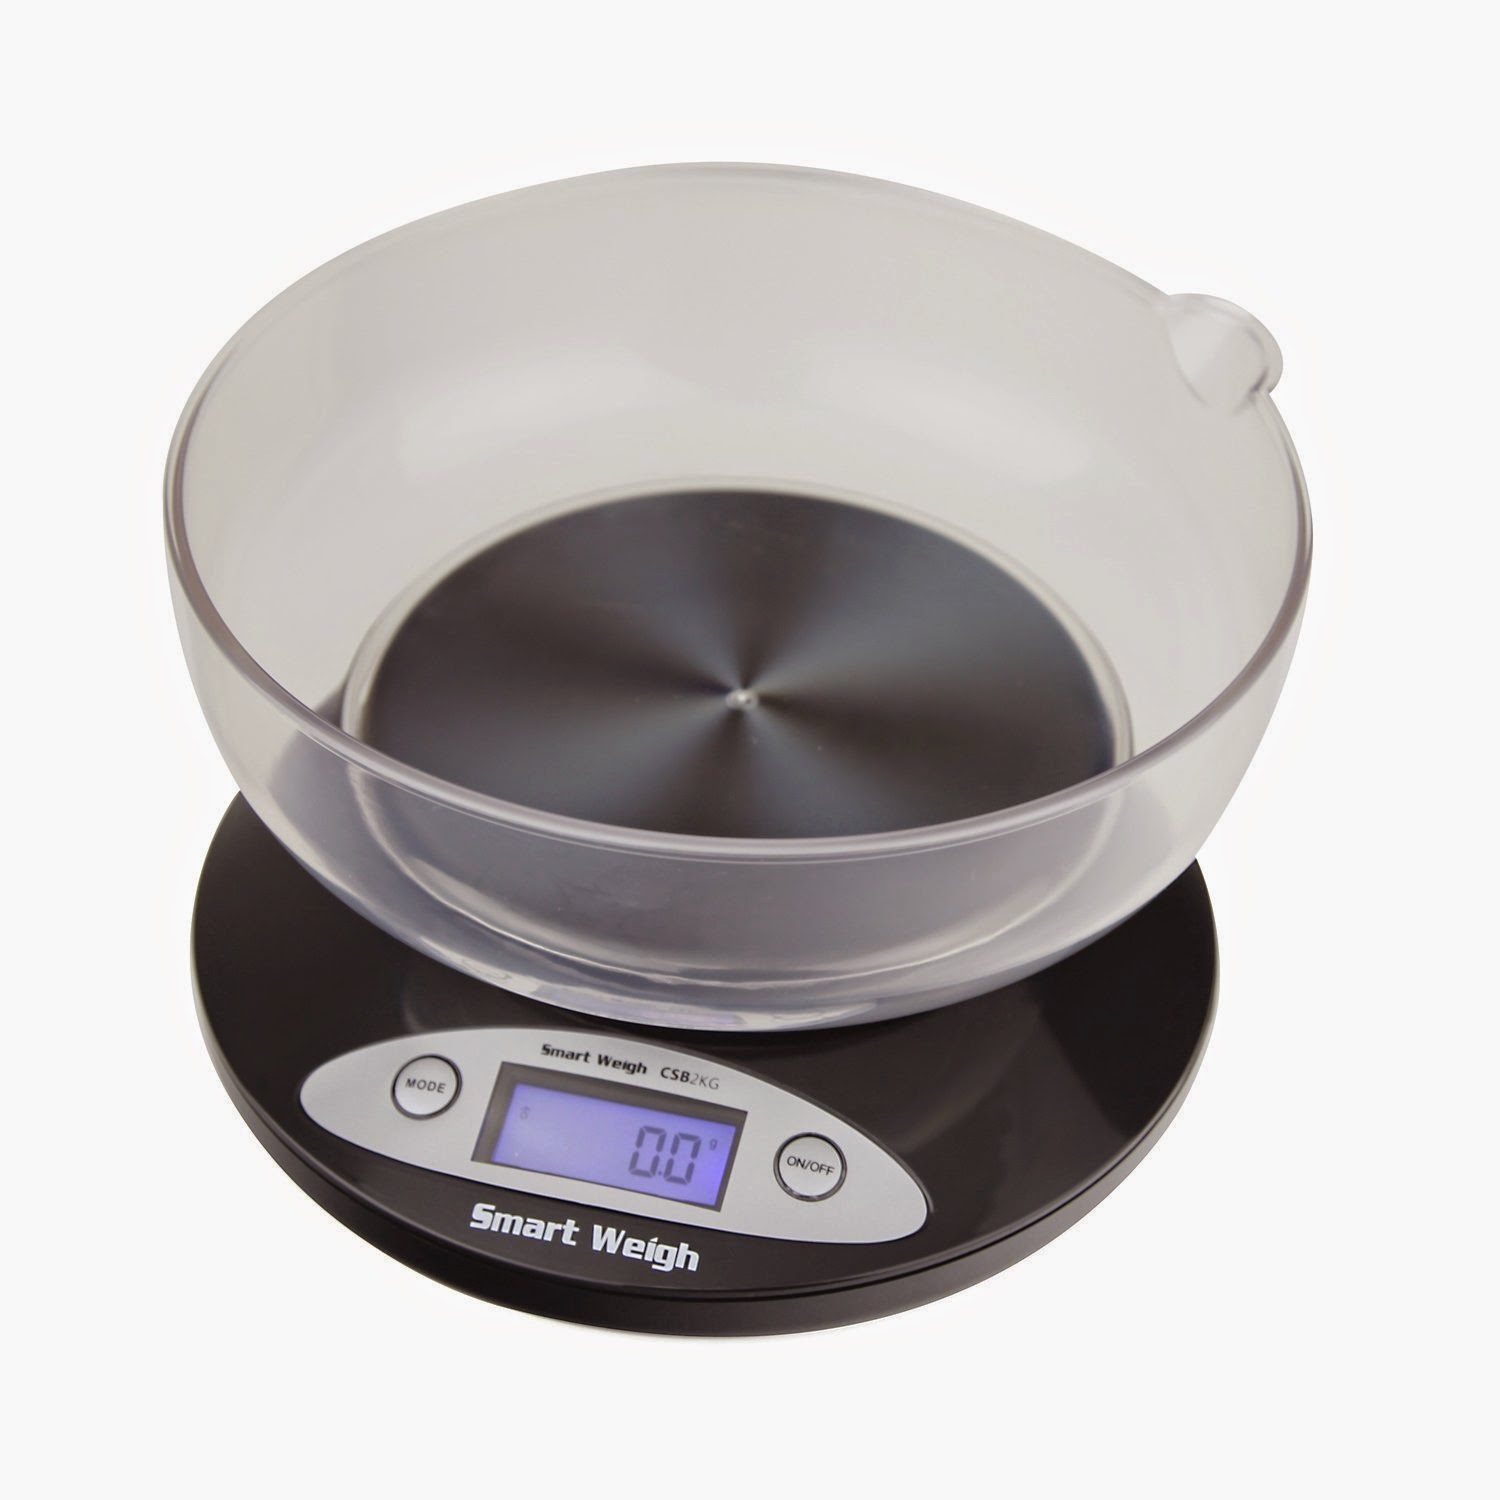 Precision Digital Kitchen Scale with Removable Bowl